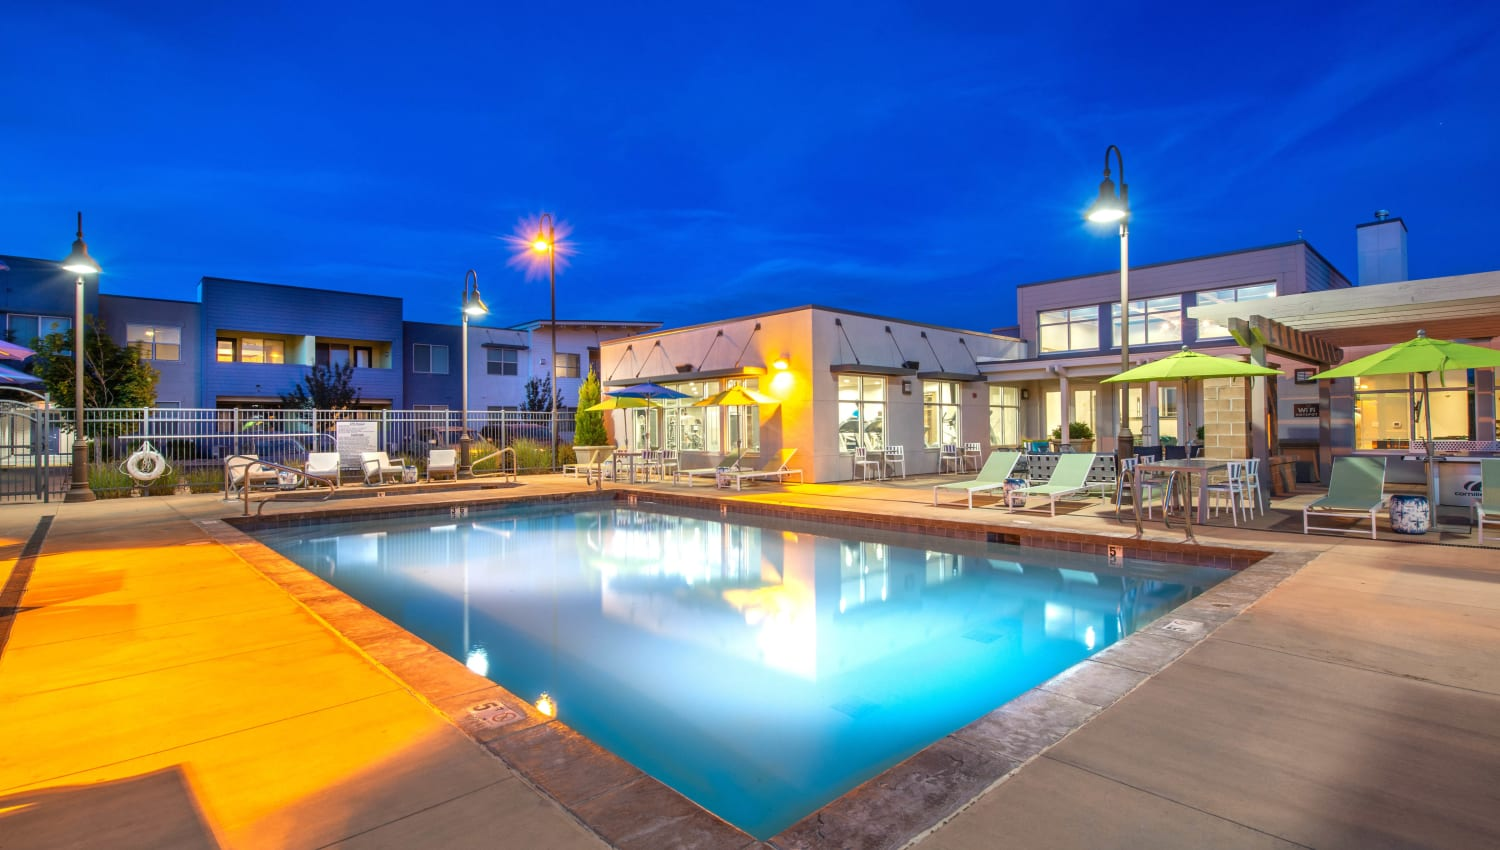 Early evening at the swimming pool with underwater lights on at Olympus at Daybreak in South Jordan, Utah